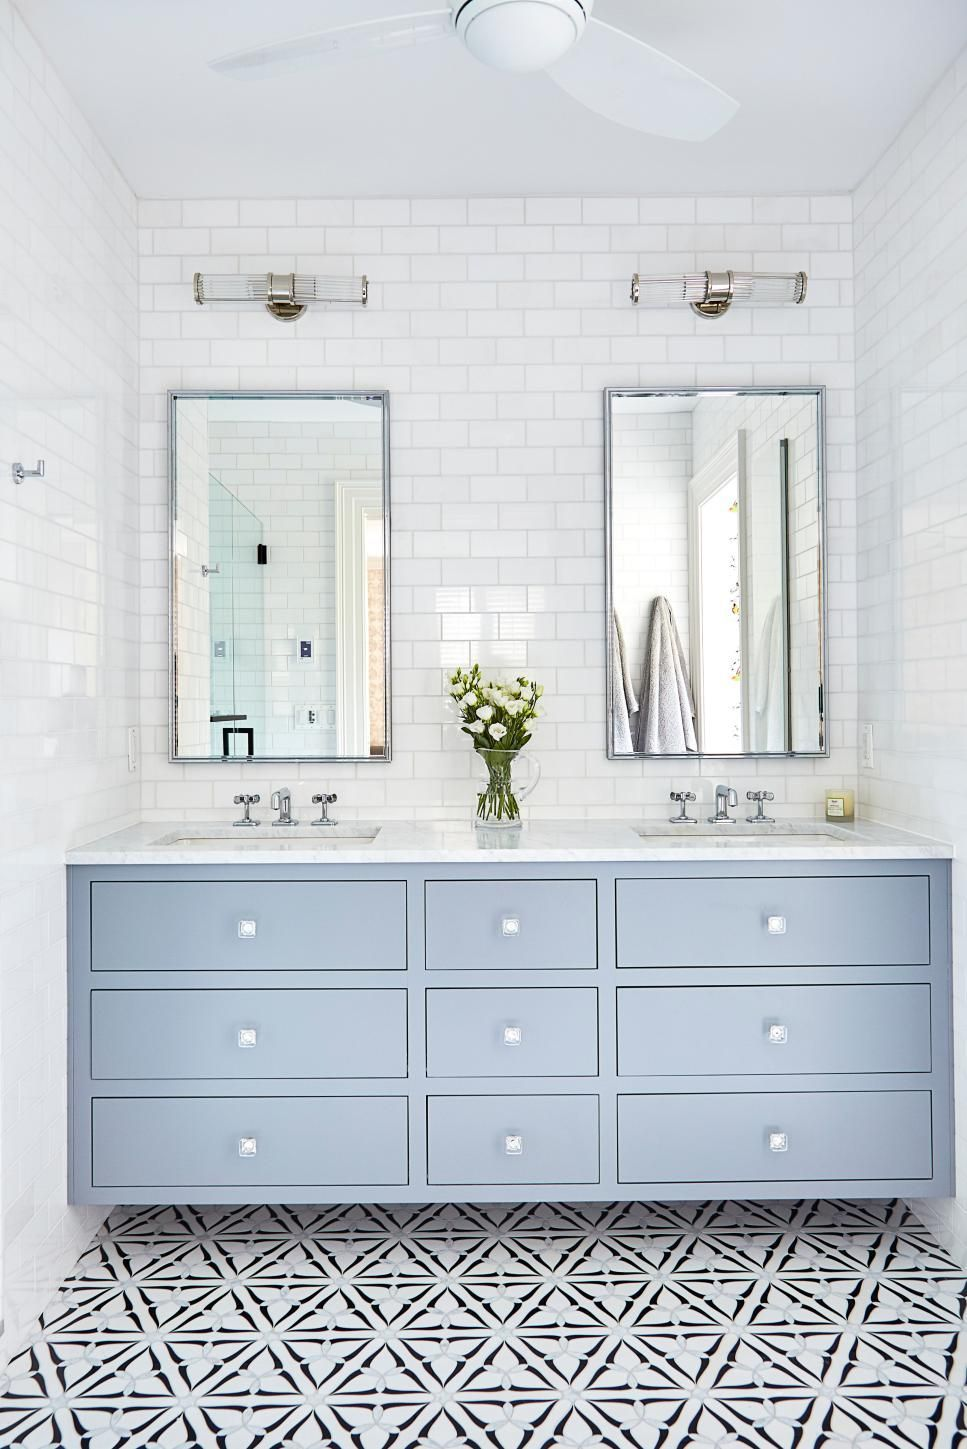 Bathroom Vanities For Any Style In 2020 Bathroom Interior Design Bathrooms Remodel Bathroom Interior